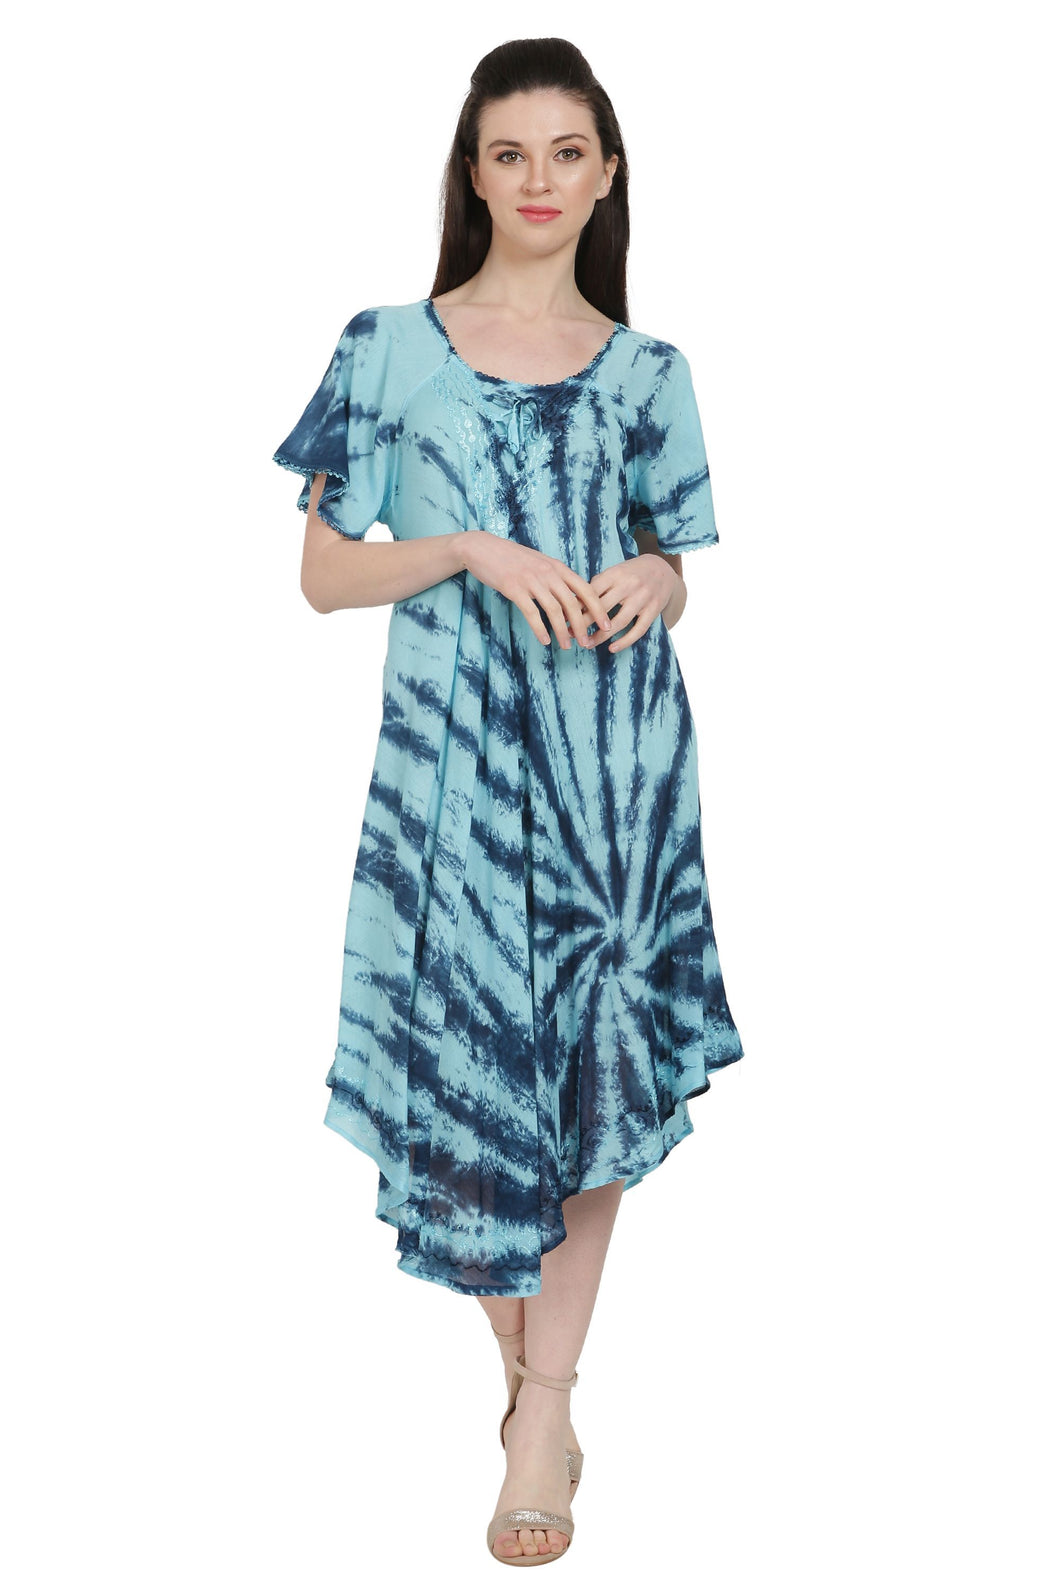 Waikiki Tie Dye Umbrella Dress w/ Sleeves UDS48-2403